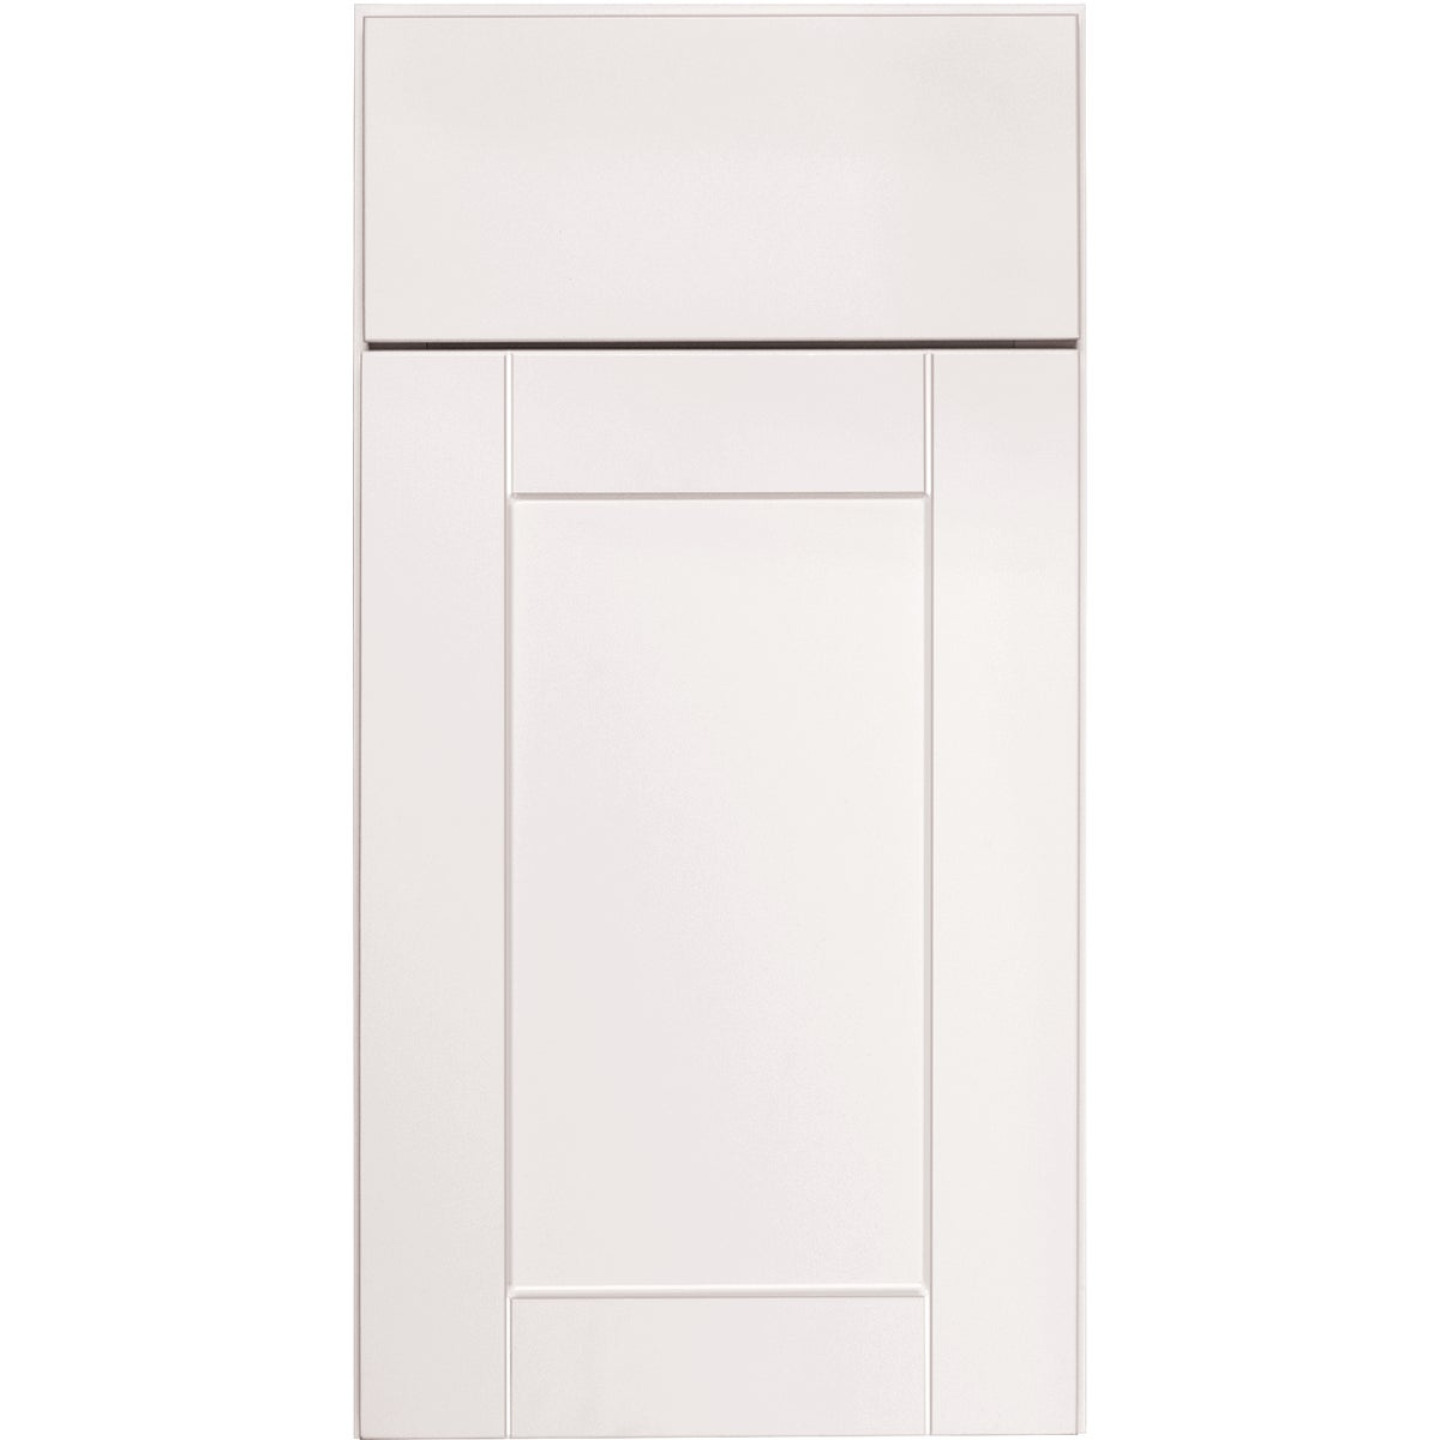 Continental Cabinets Andover Shaker 18 In. W x 30 In. H x 12 In. D White Thermofoil Wall Kitchen Cabinet Image 3